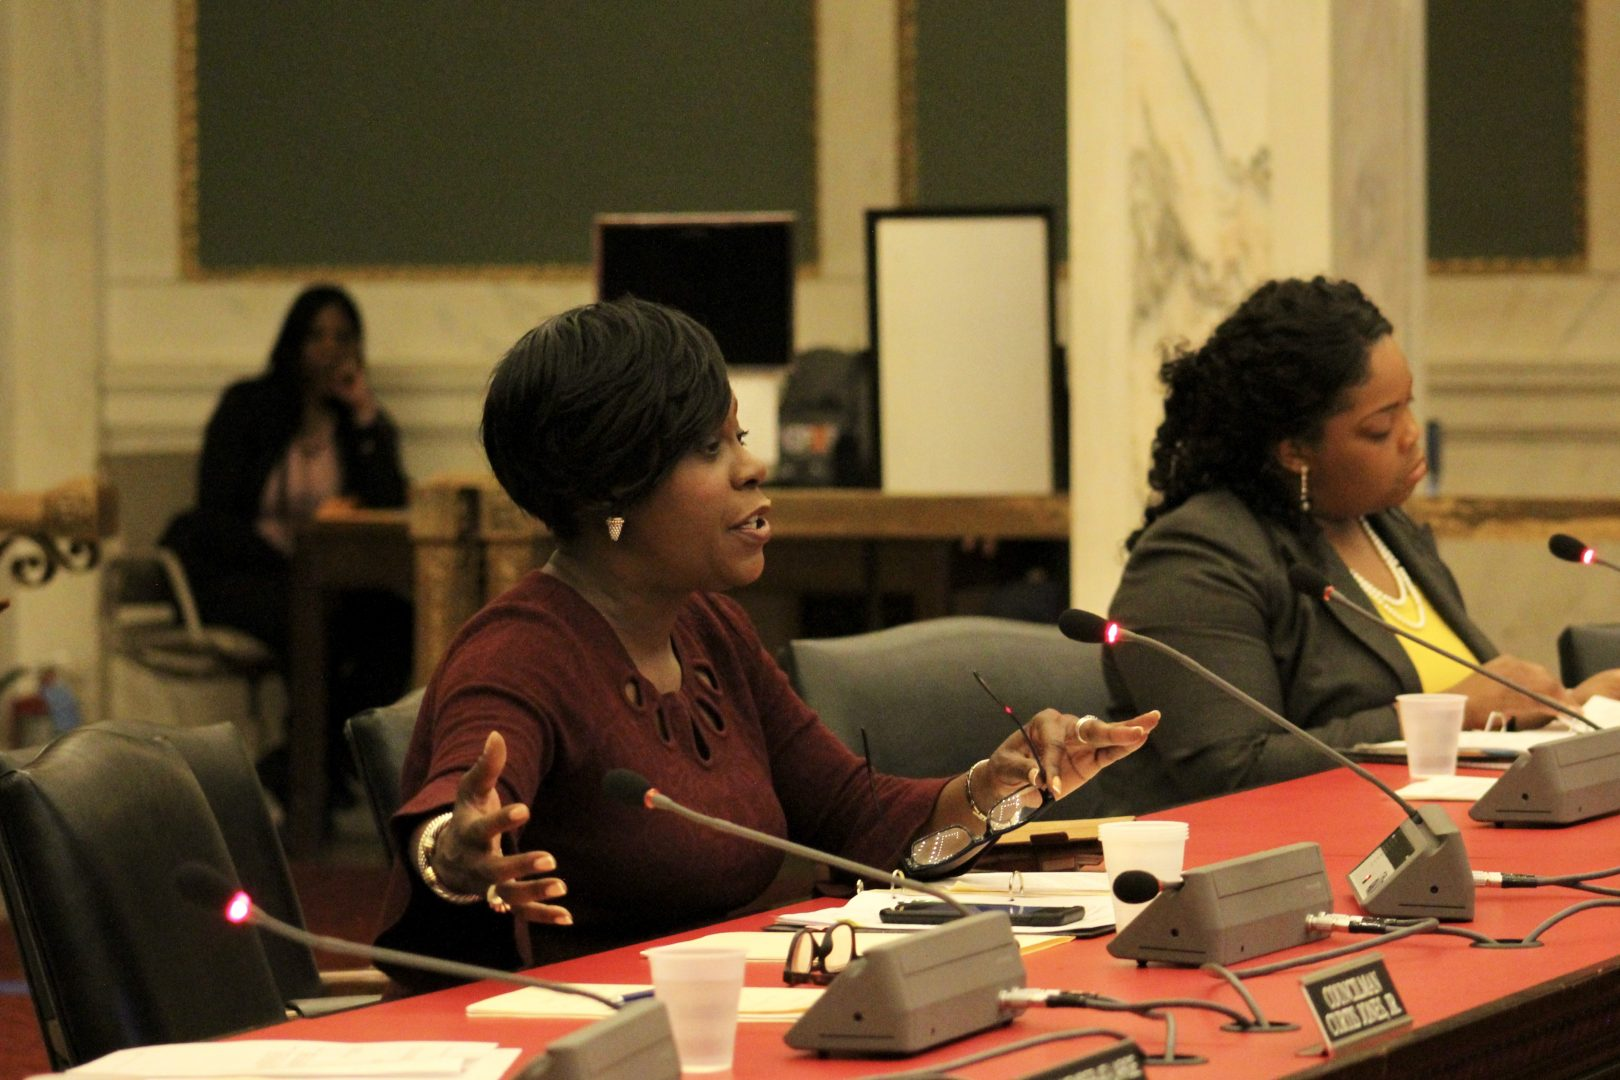 Majority Leader Cherelle Parker gestures with both hands while sitting at a table in the City Council chamber and speaking into a microphone.